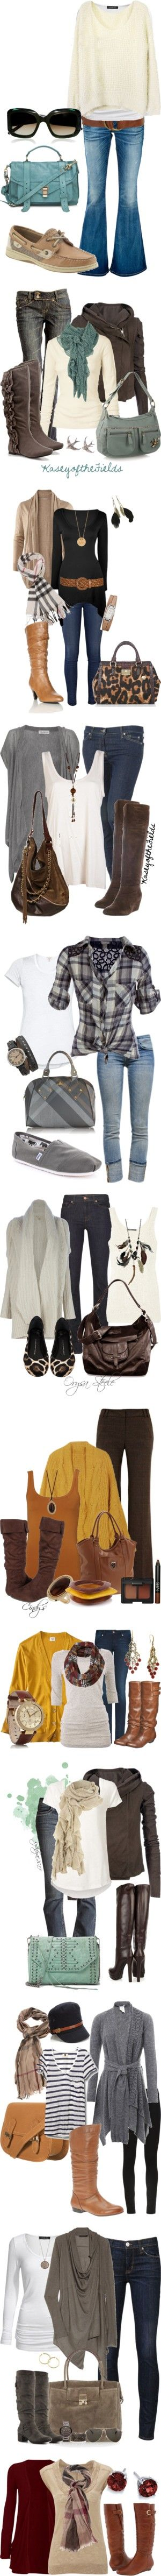 """Fall in Pants"" by vbean ❤ liked on Polyvore"